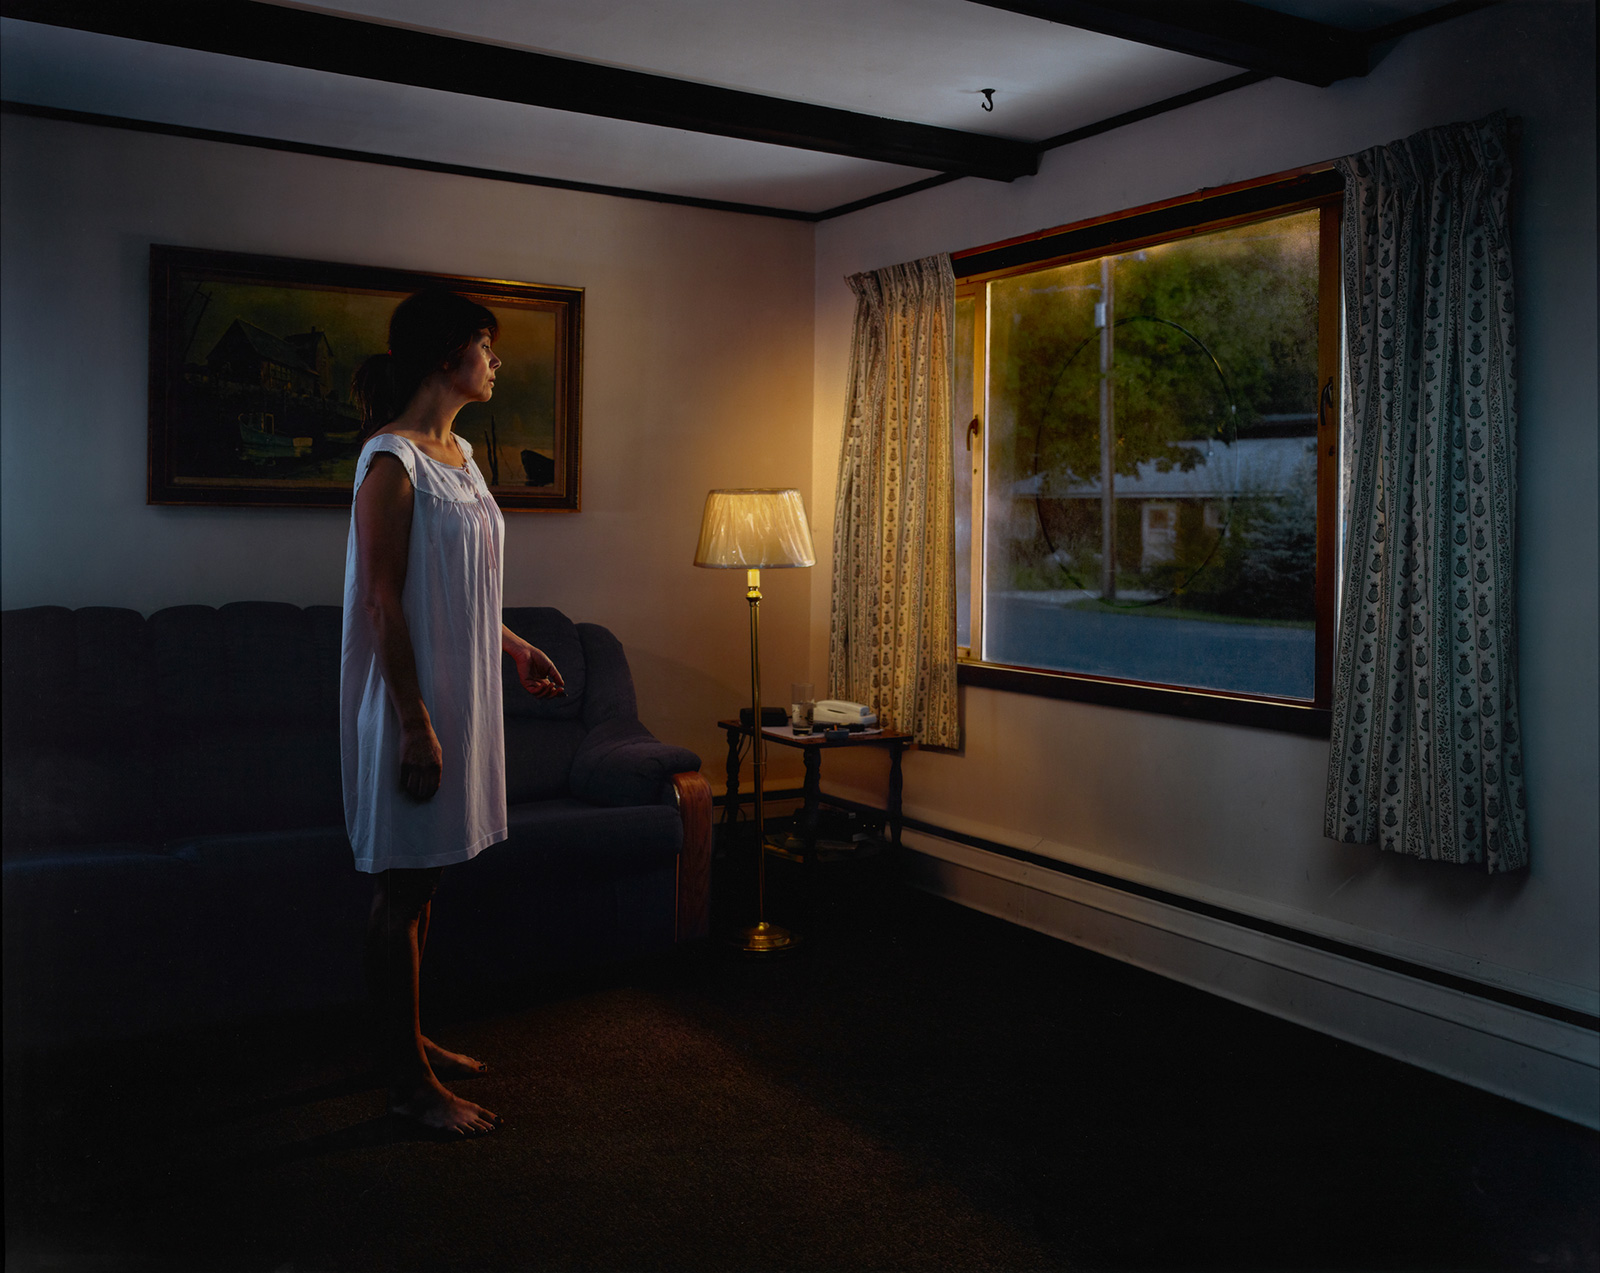 A woman in a nightgown stands in a room with a couch and a lit floor lamp, looking out a large picture window. A house is visible, lit by a streetlamp.